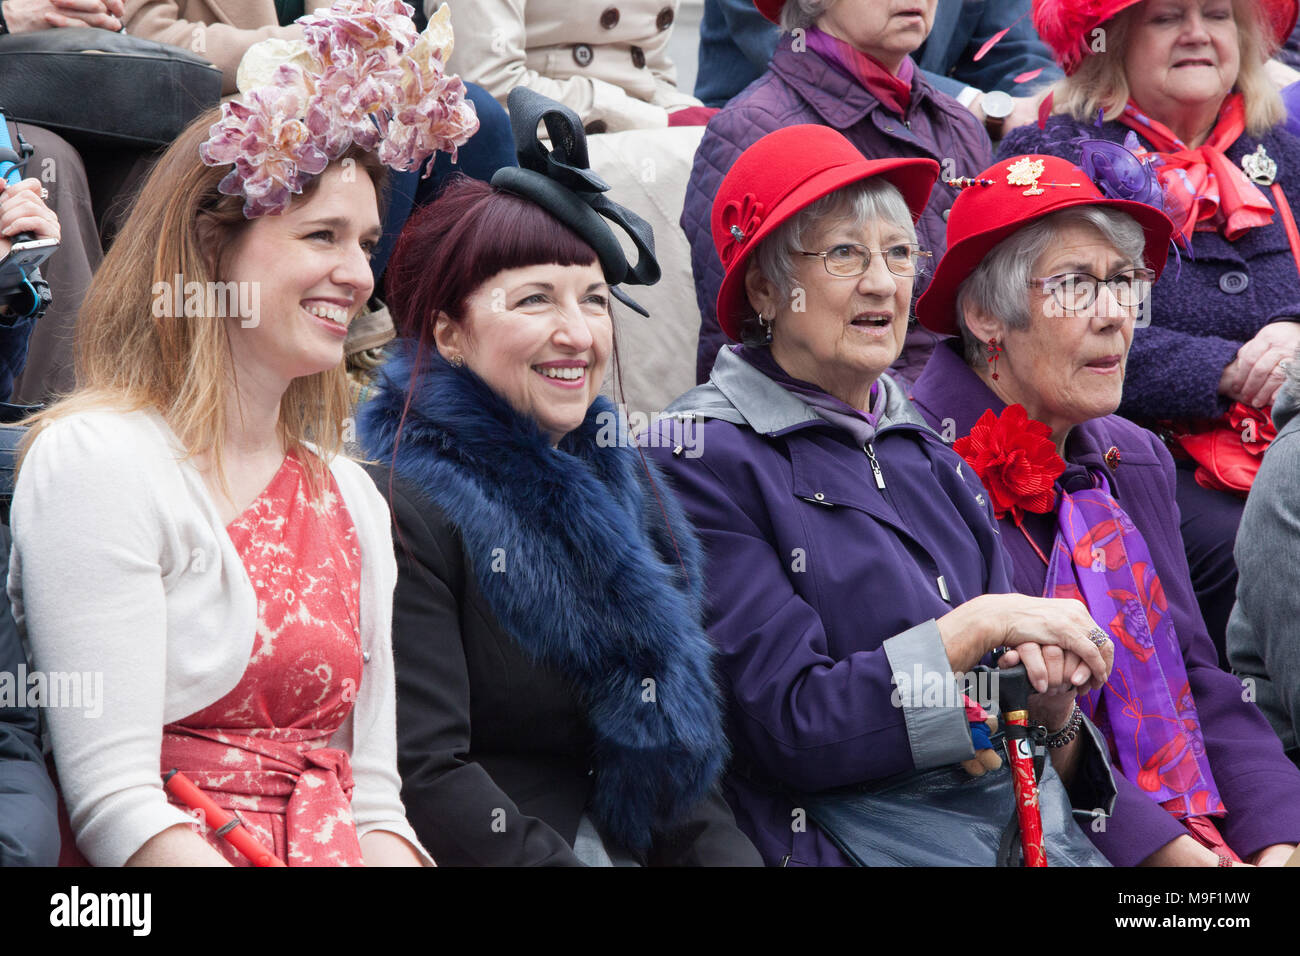 London, UK, 25 Mar 2018. Participants in the Hat Walk for London Hat Week, including many milliners who had made their own hats, walked along the South Bank from Tate Modern to City Hall. Credit: Anna Watson/Alamy Live News - Stock Image